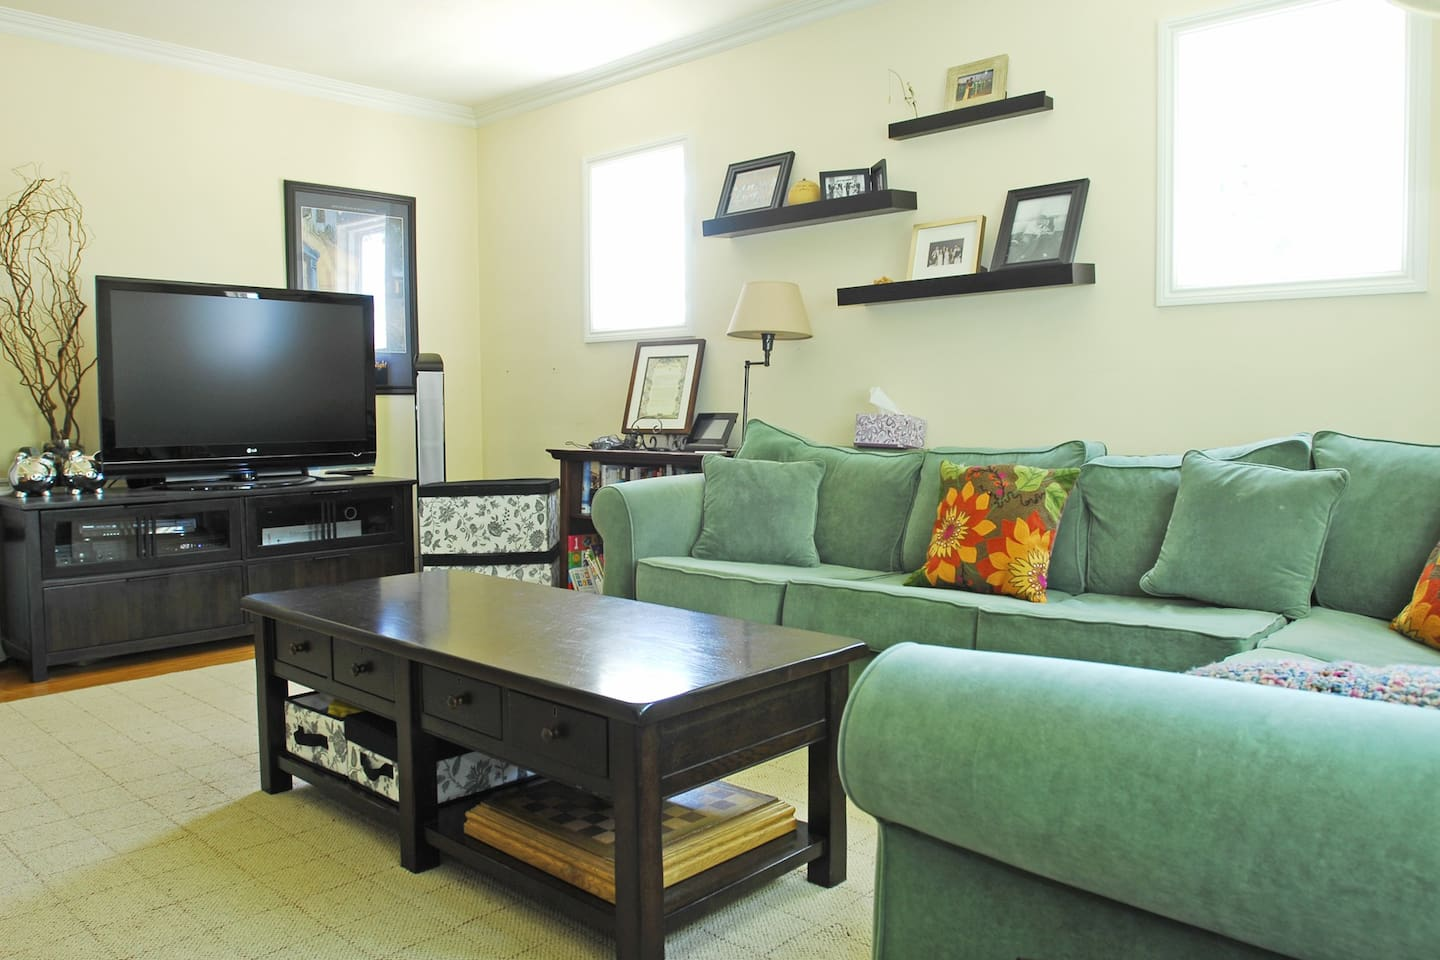 The front room includes a large TV with cable.  With Andrew moving in, the couch and TV are the same, but a chair and coffee table have changed.